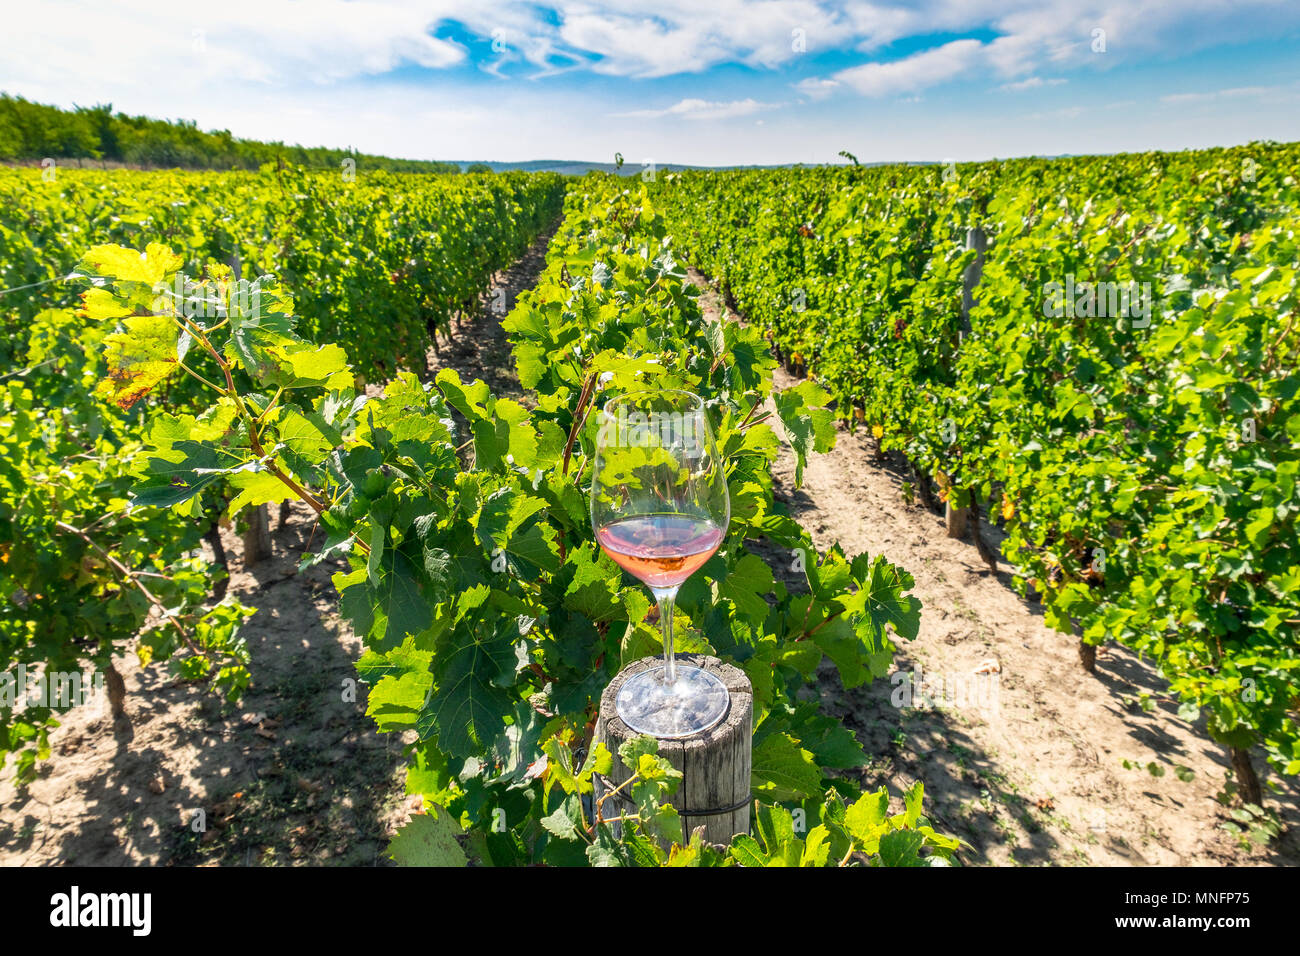 Glass of red wine in the vineyard - Stock Image